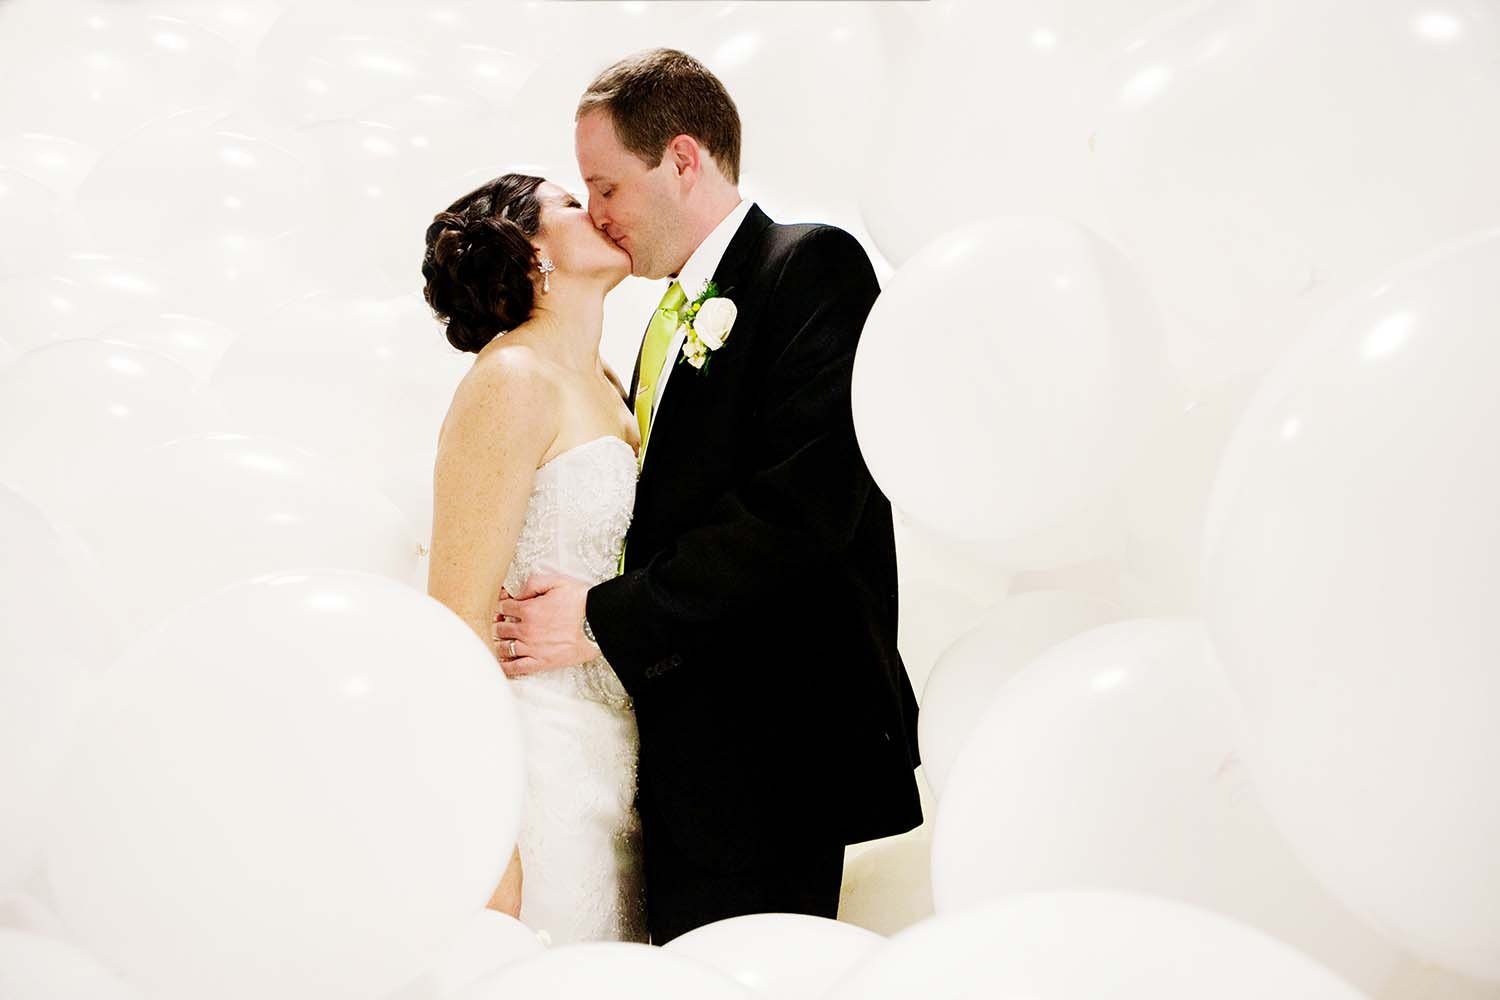 Garfield Park Conservatory White Balloons Kissing Bride Groom